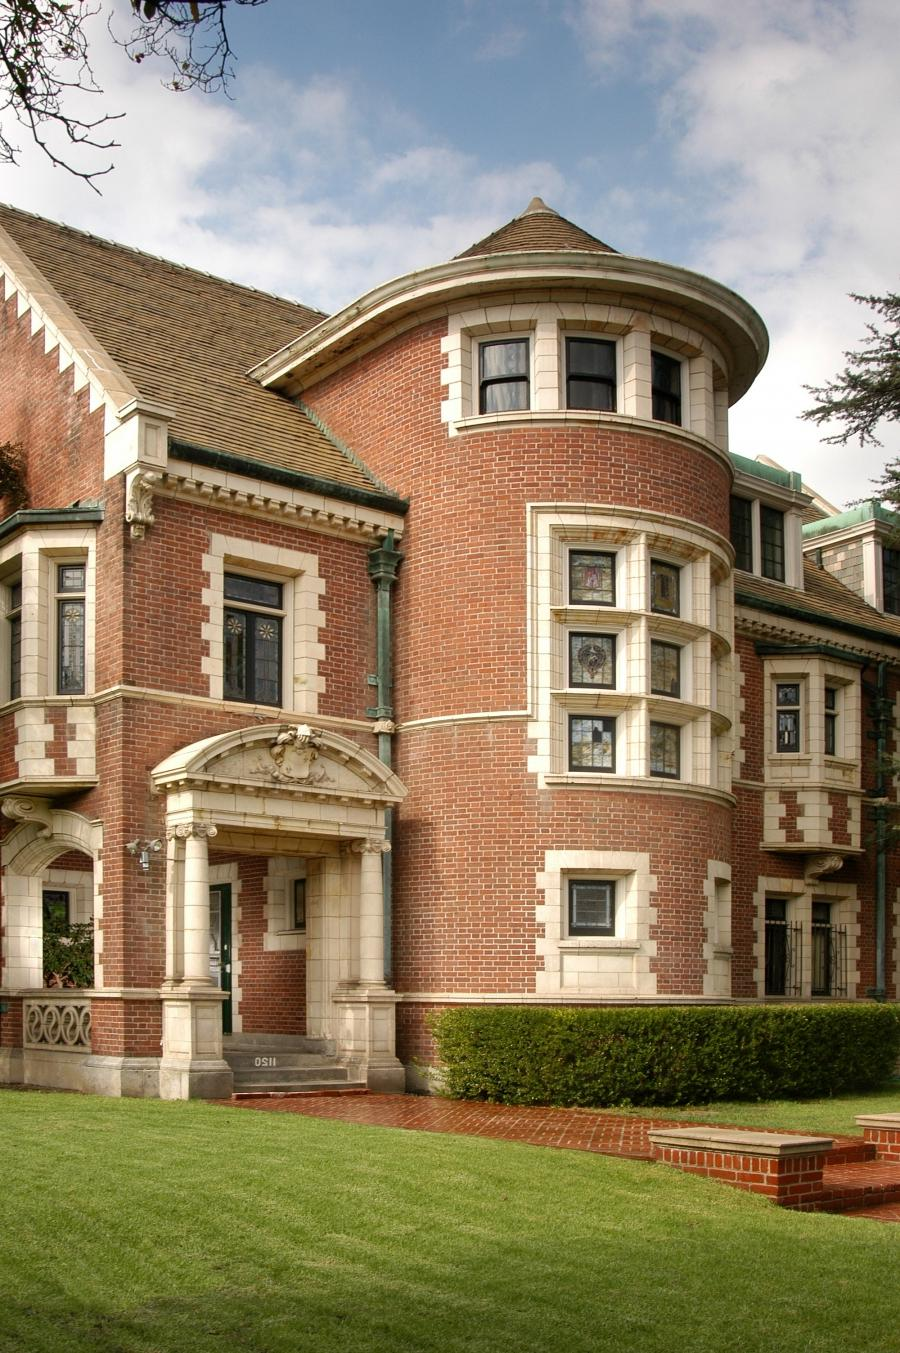 American horror story house for sale photos for American horror story house for sale